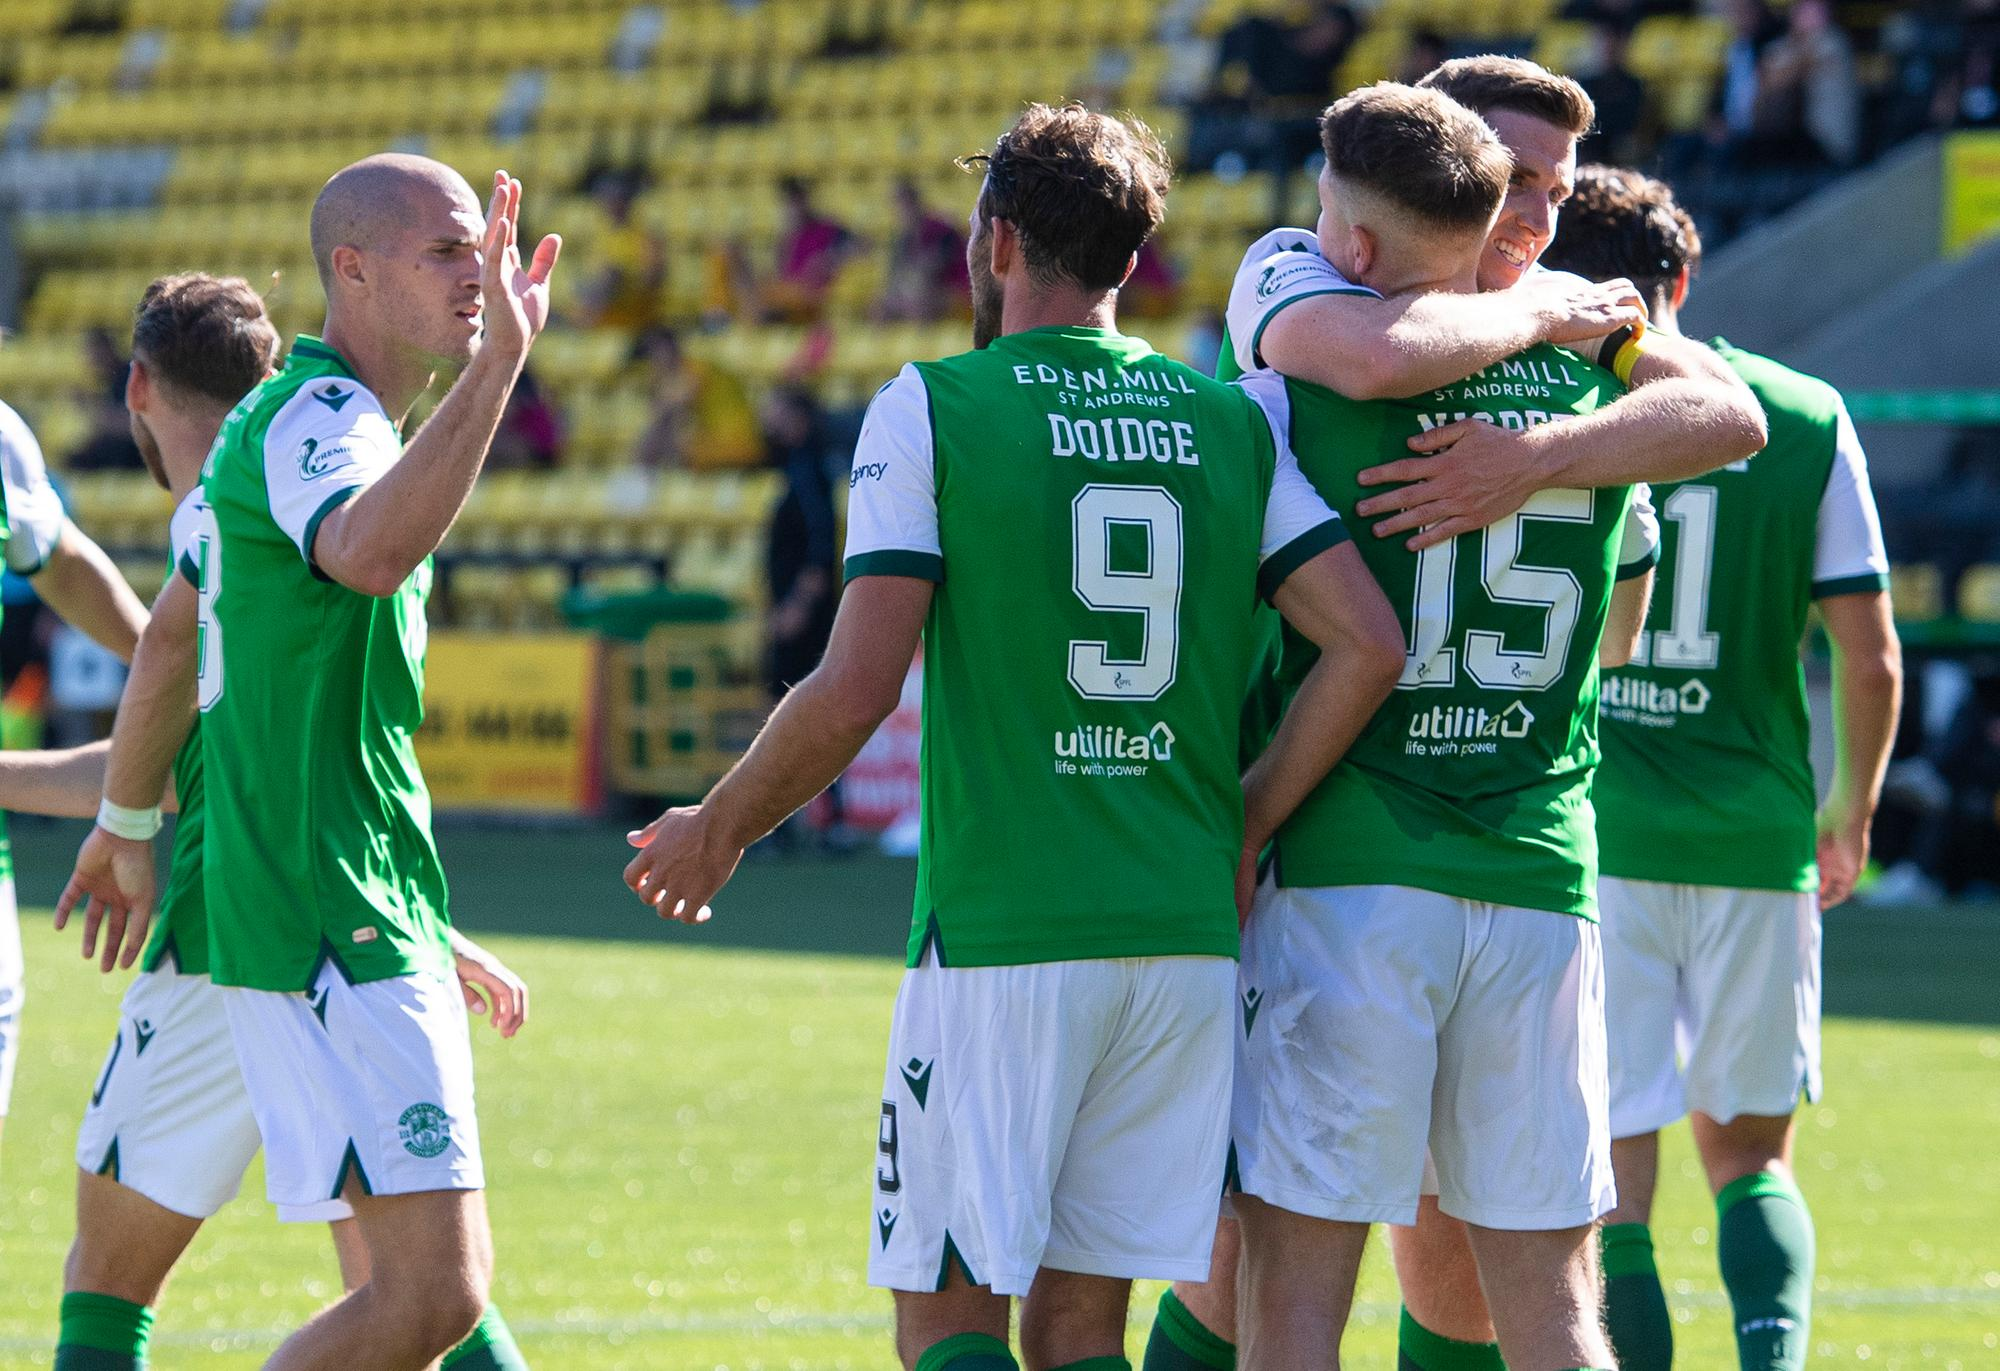 Strike force to be feared - with plenty of supply: Three Hibs observations after stunning win at Livingston